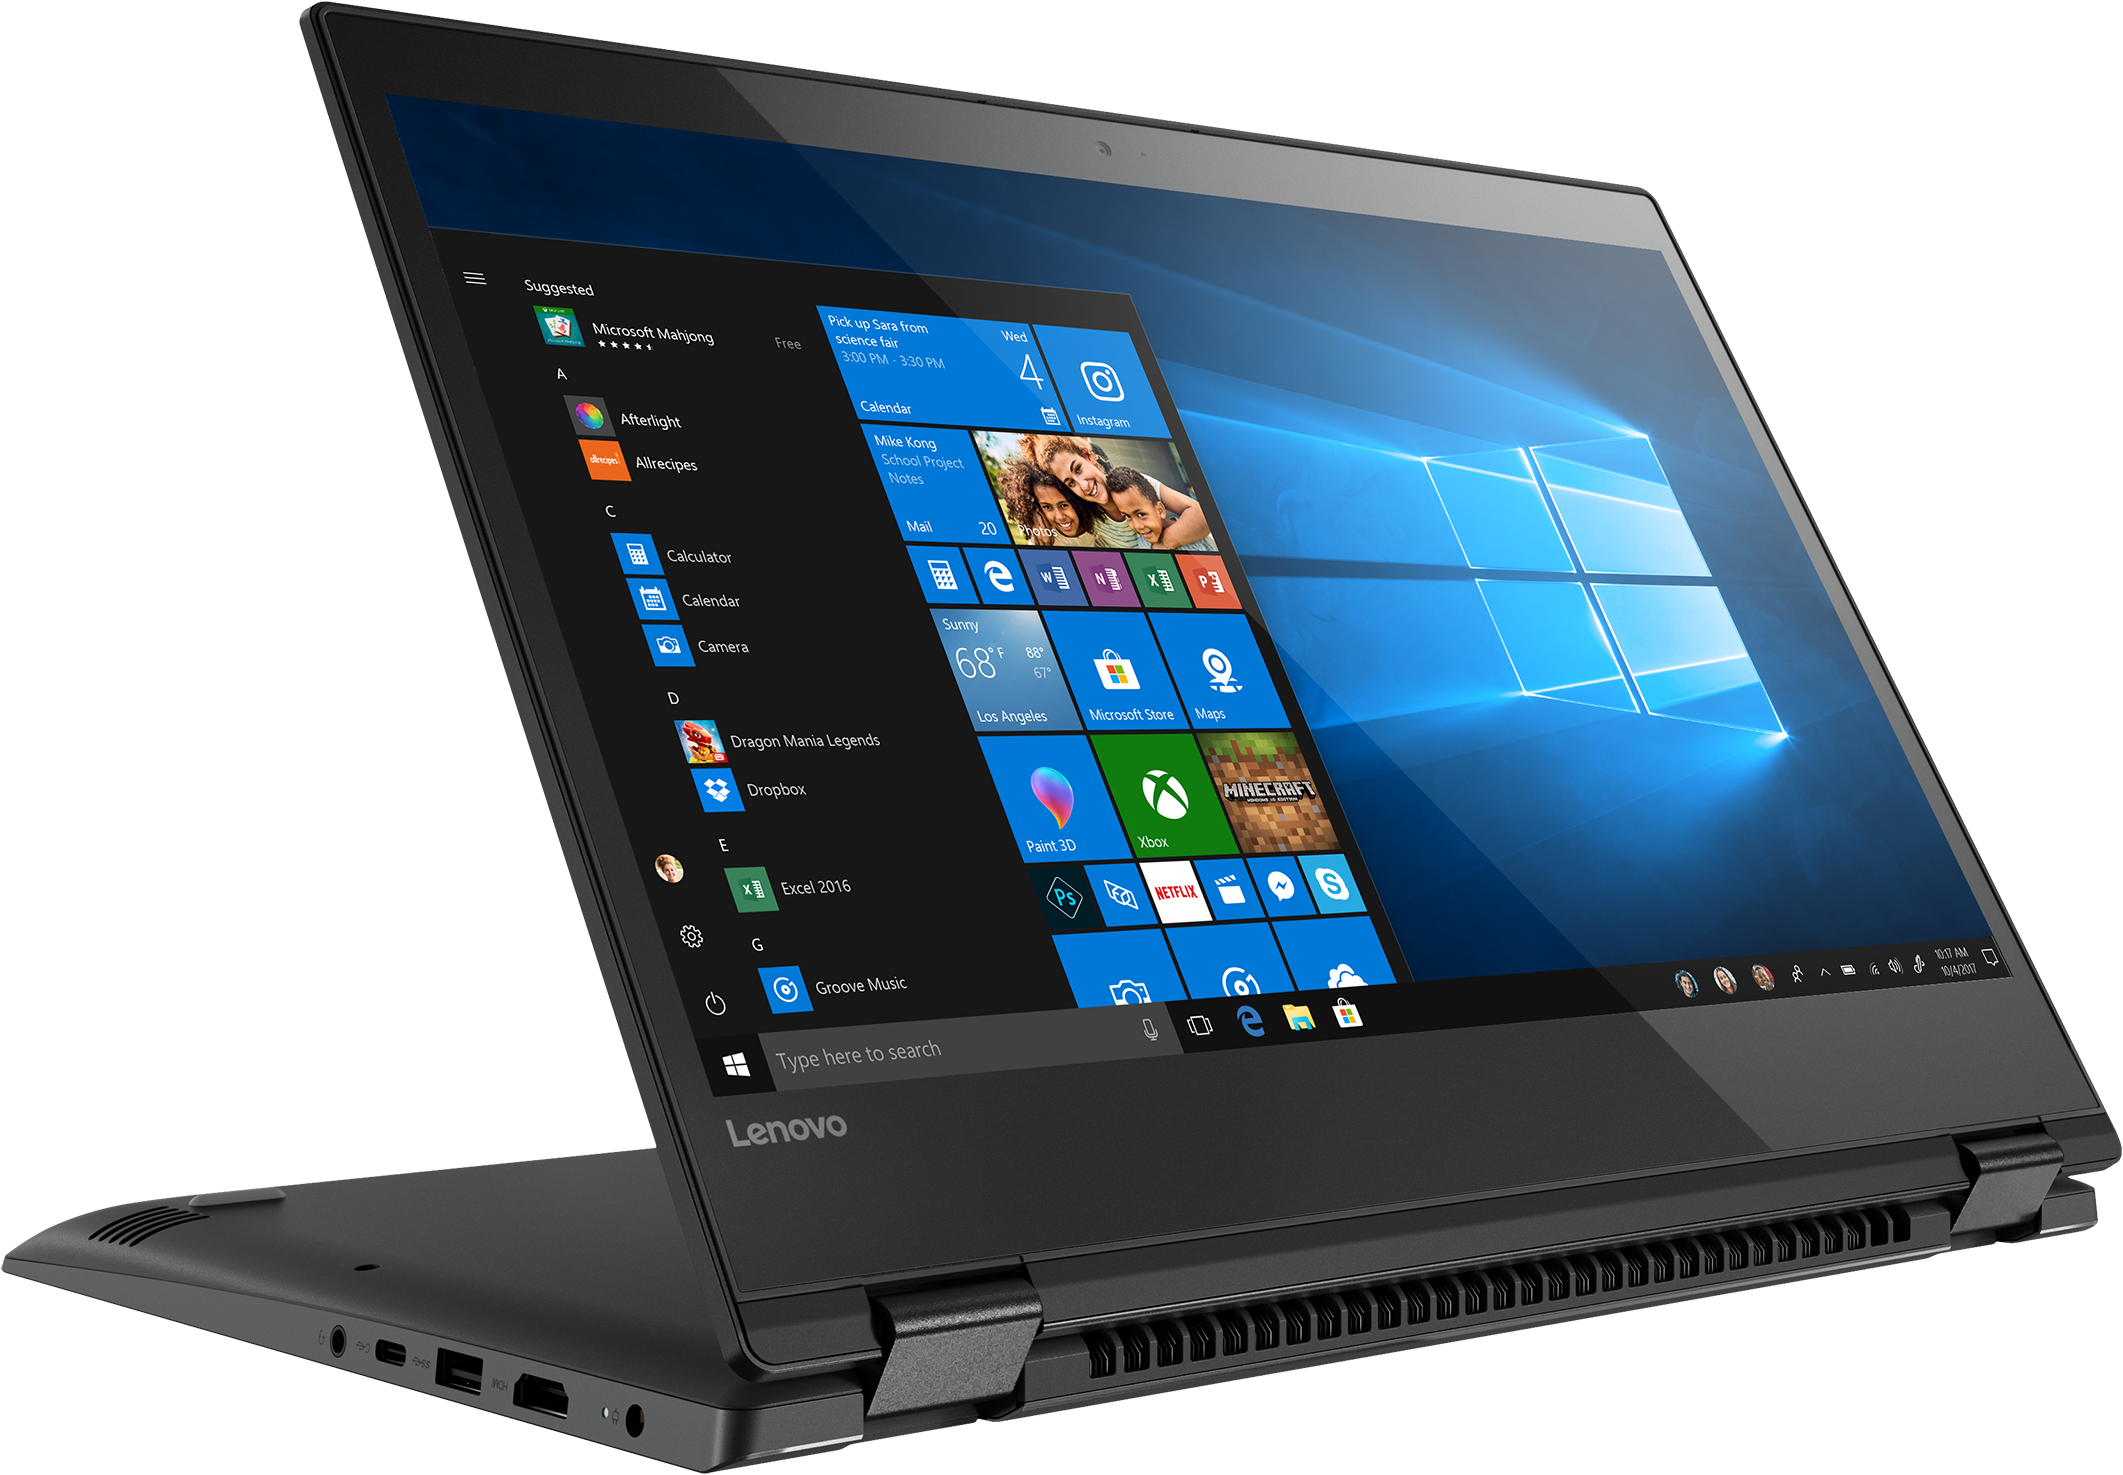 Read More + Read Less - Lenovo is the world's largest PC vendor offering an Free Shipping Codes· Hassle-Free Savings· Coupons Updated Daily· Verified Promo Codes16,+ followers on Twitter.